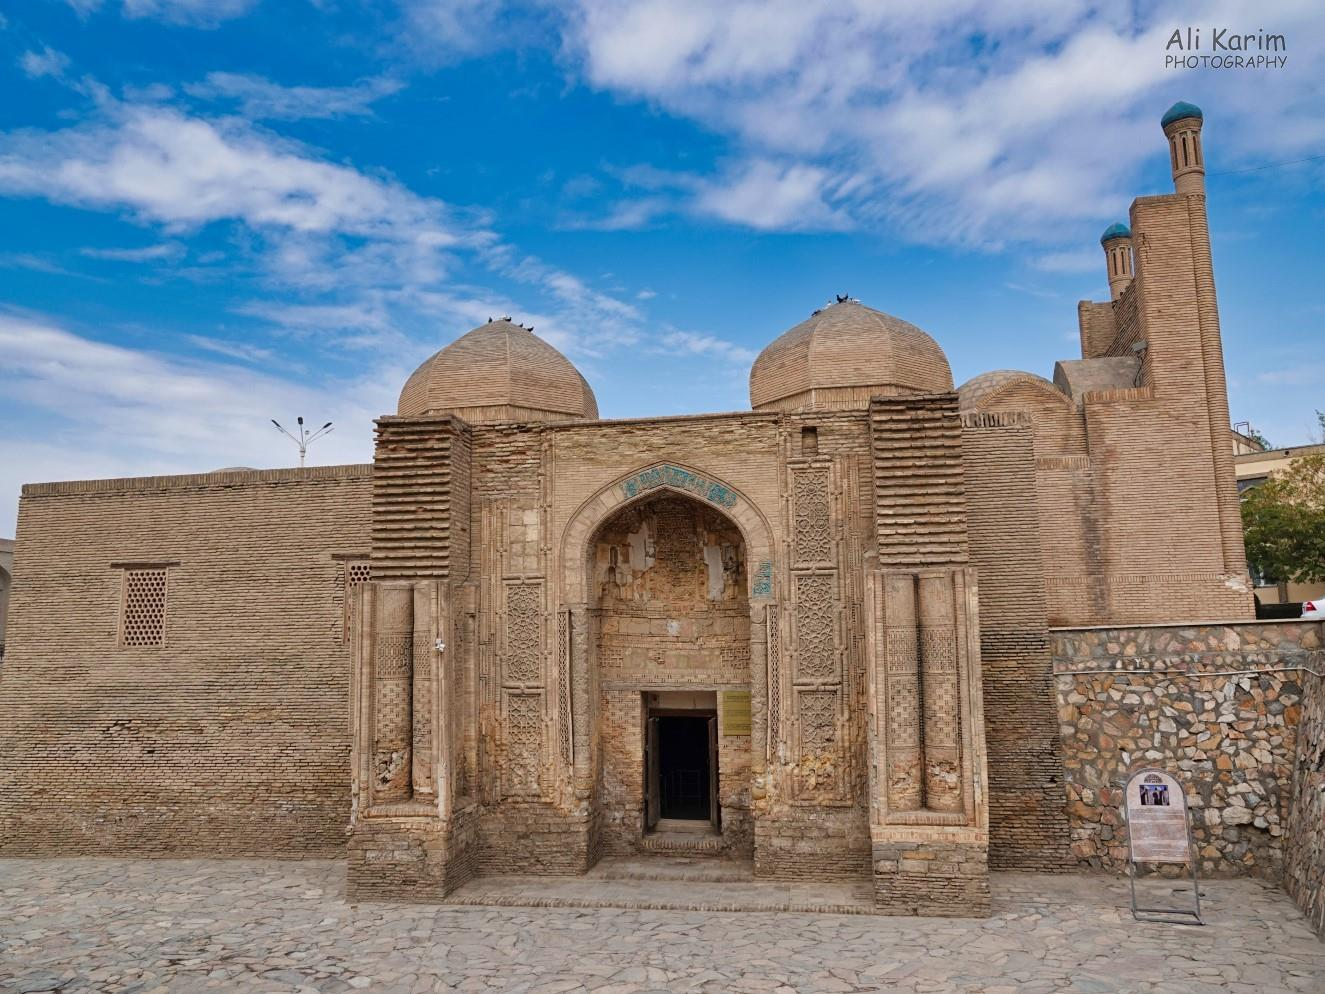 Bukhara, Oct 2019, Old mosque, restored